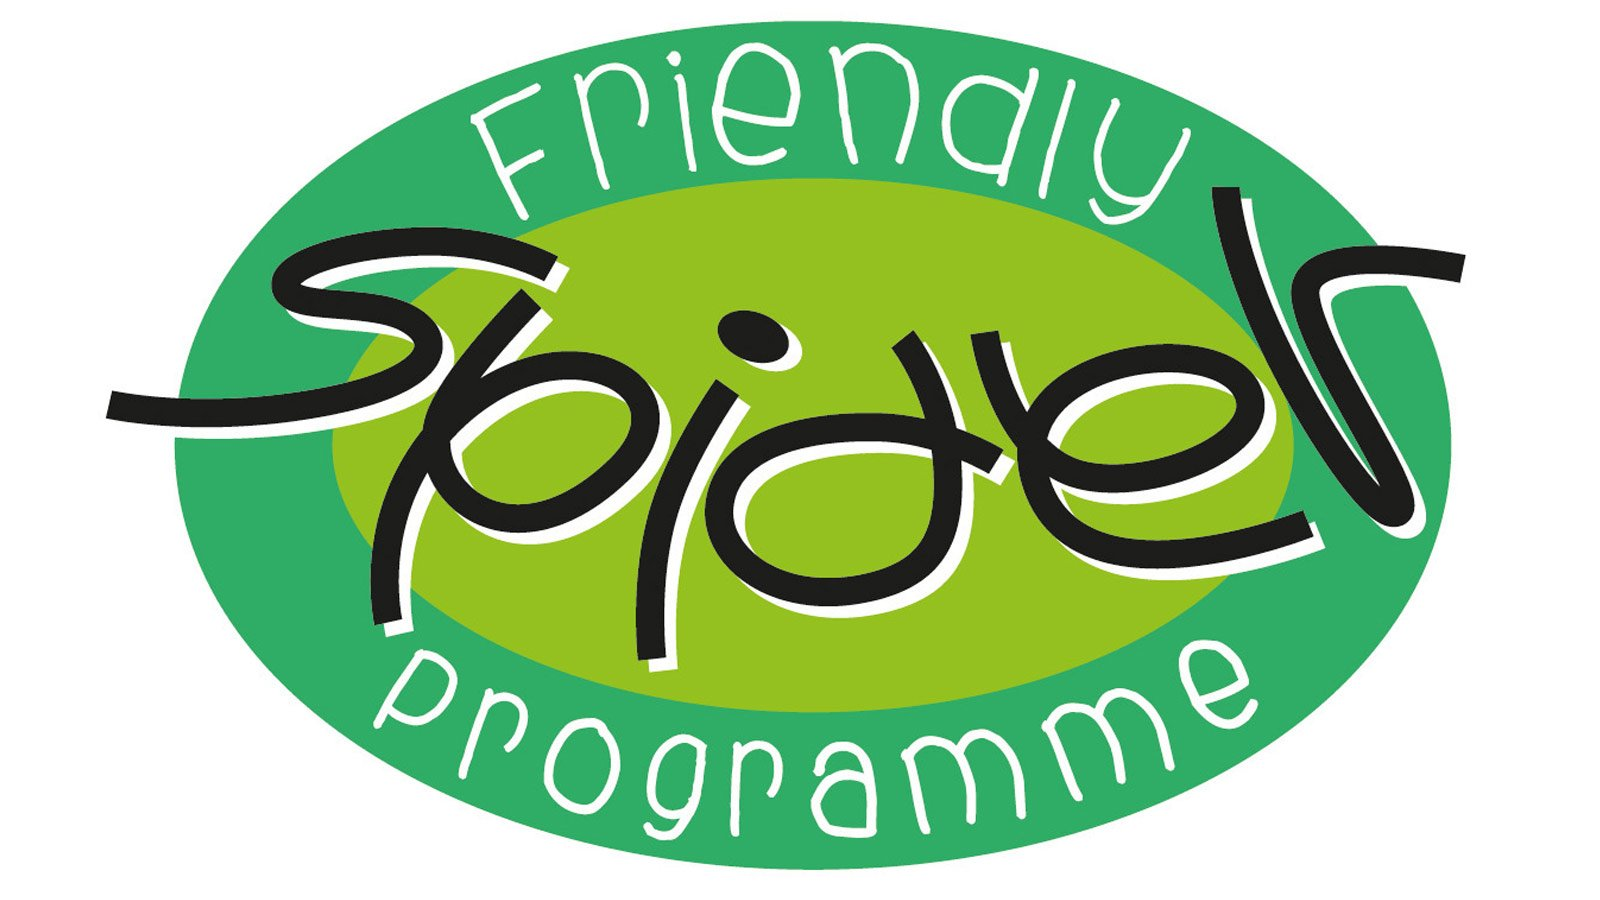 friendly spider programme zoological society of london zsl